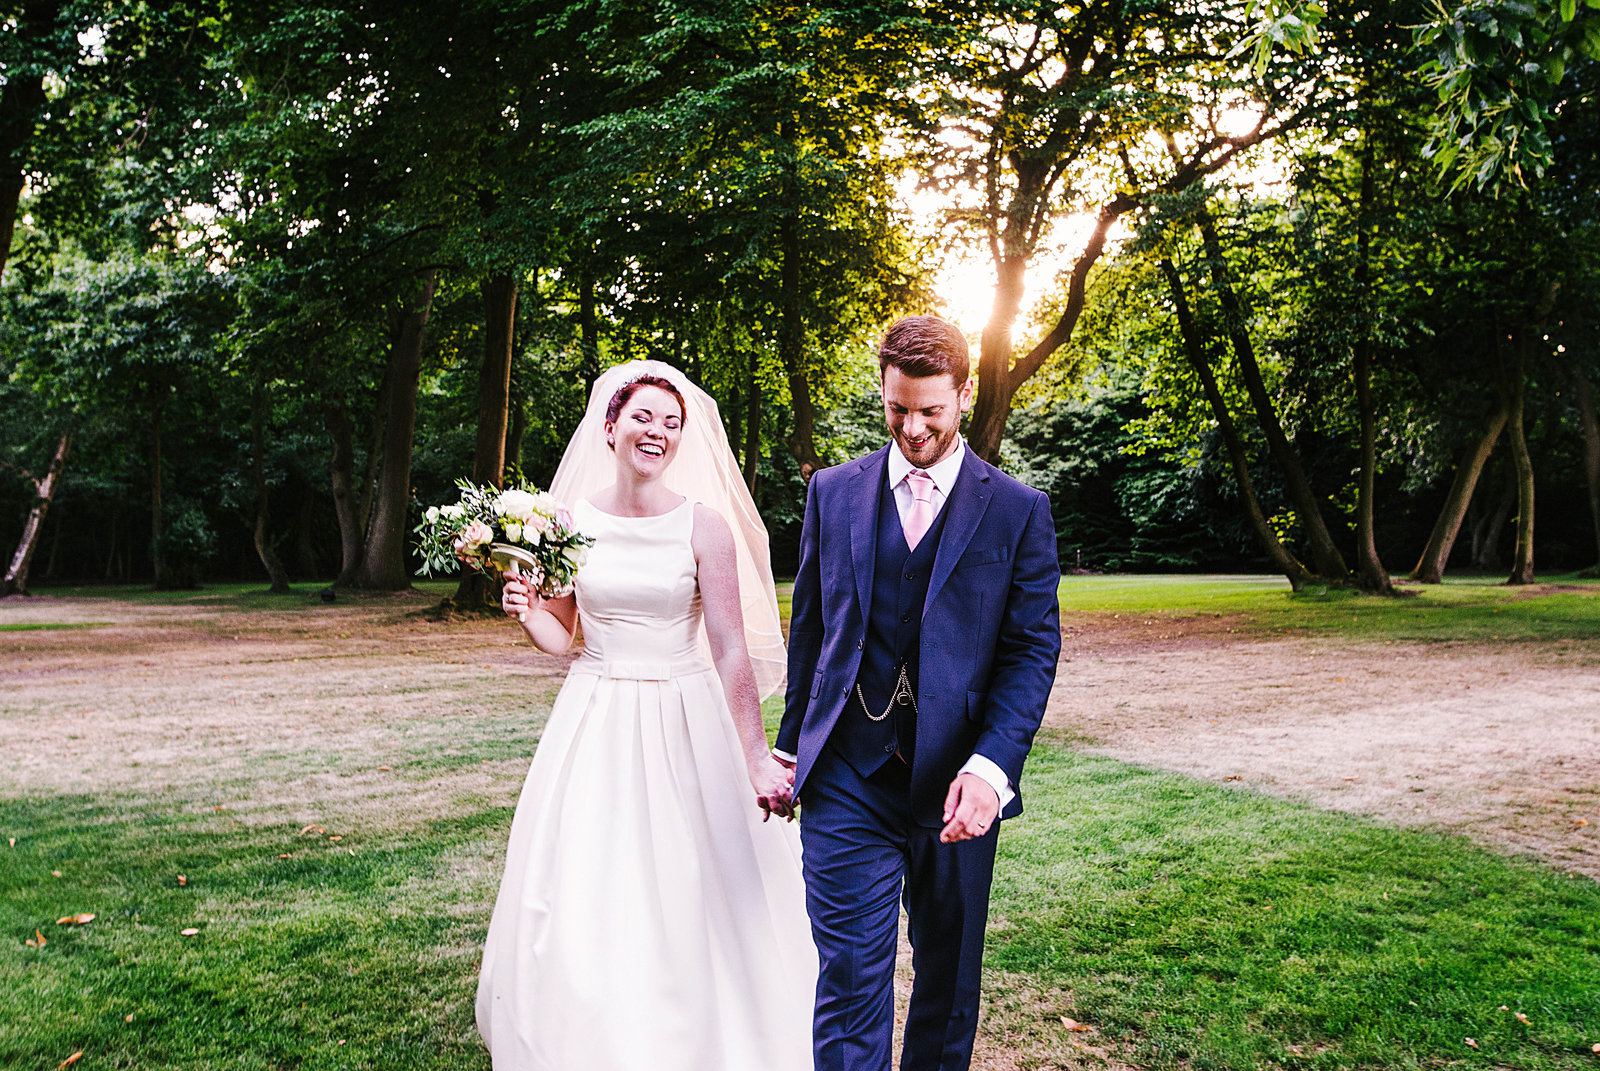 Imogen & Barrys Wedding- 4th July 2015-570